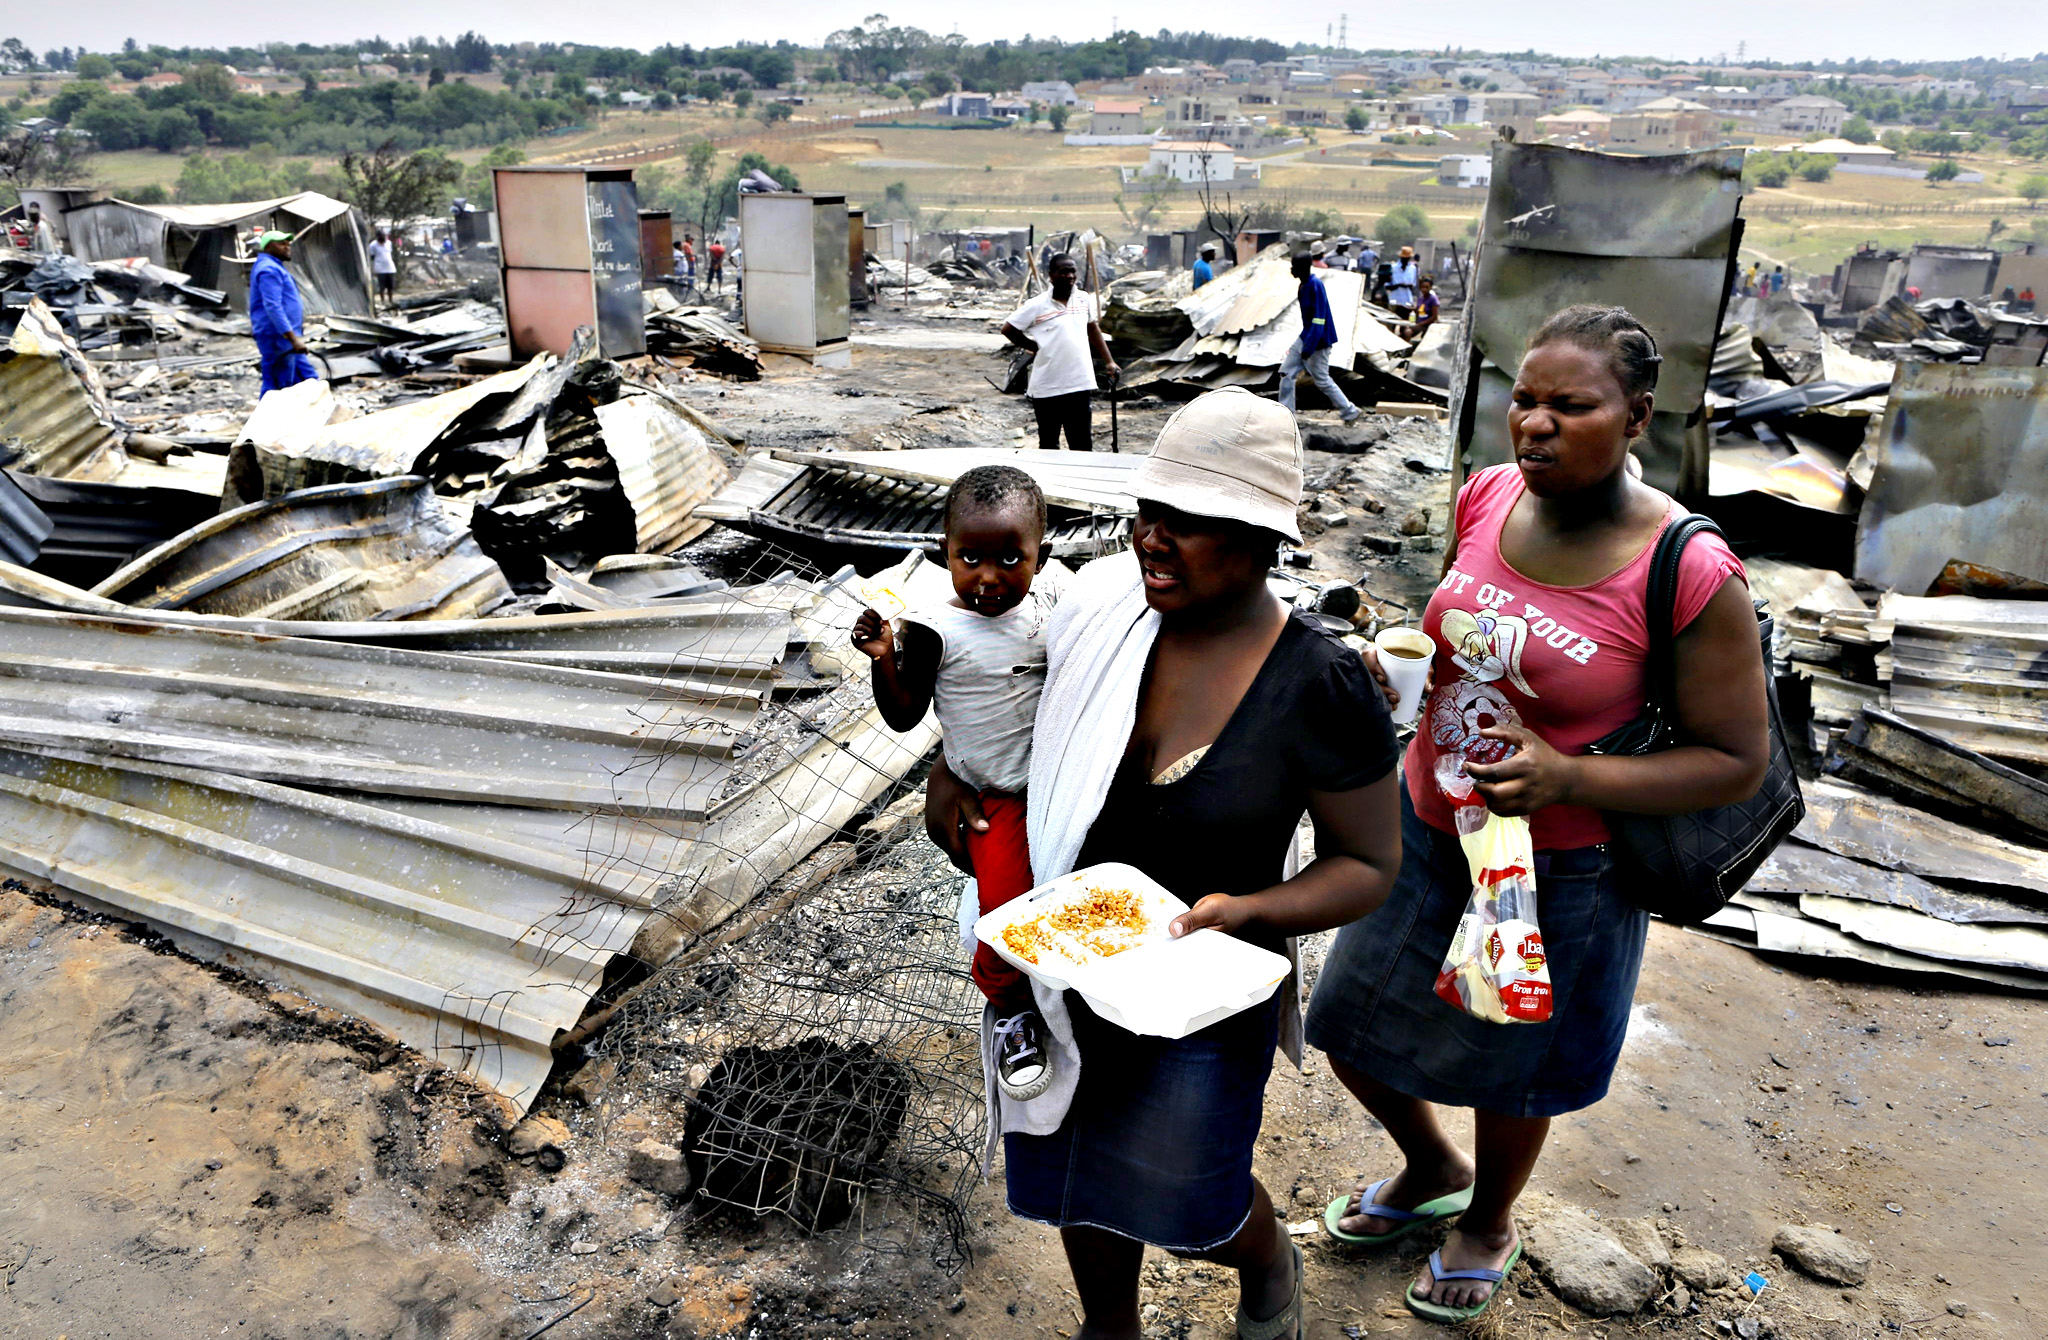 A mother carries her son through burnt out shacks after they where raised to the ground in a fire that destroyed 250 homes at the informal settlement in Kaya Sands, Johannesburg on Thursday. The fire yesterday fueled by high winds and a heat waves swept through the shacks of the settlement. No one was killed in the fire but hundreds of families have been left homeless.